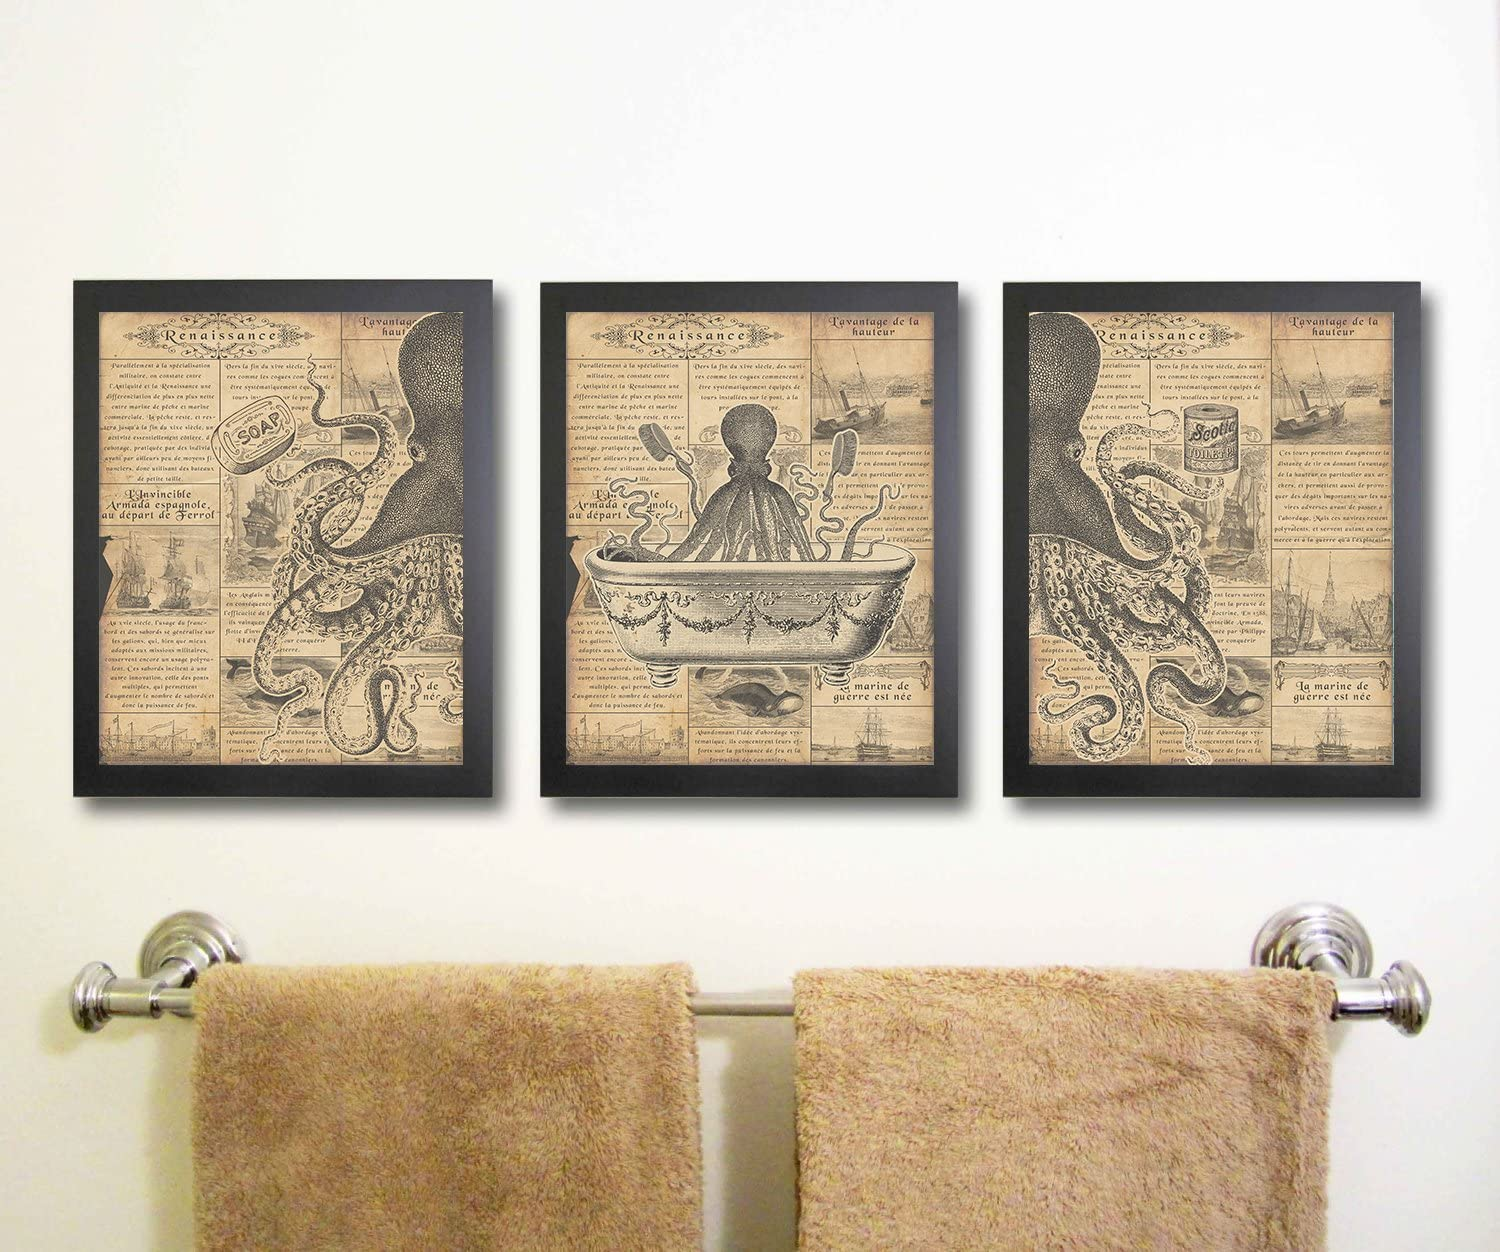 Amazon Com Octopus Funny Vintage Bath Image Nautical Wall Art Prints Set Of 3 Bathroom Blue Posters Prints